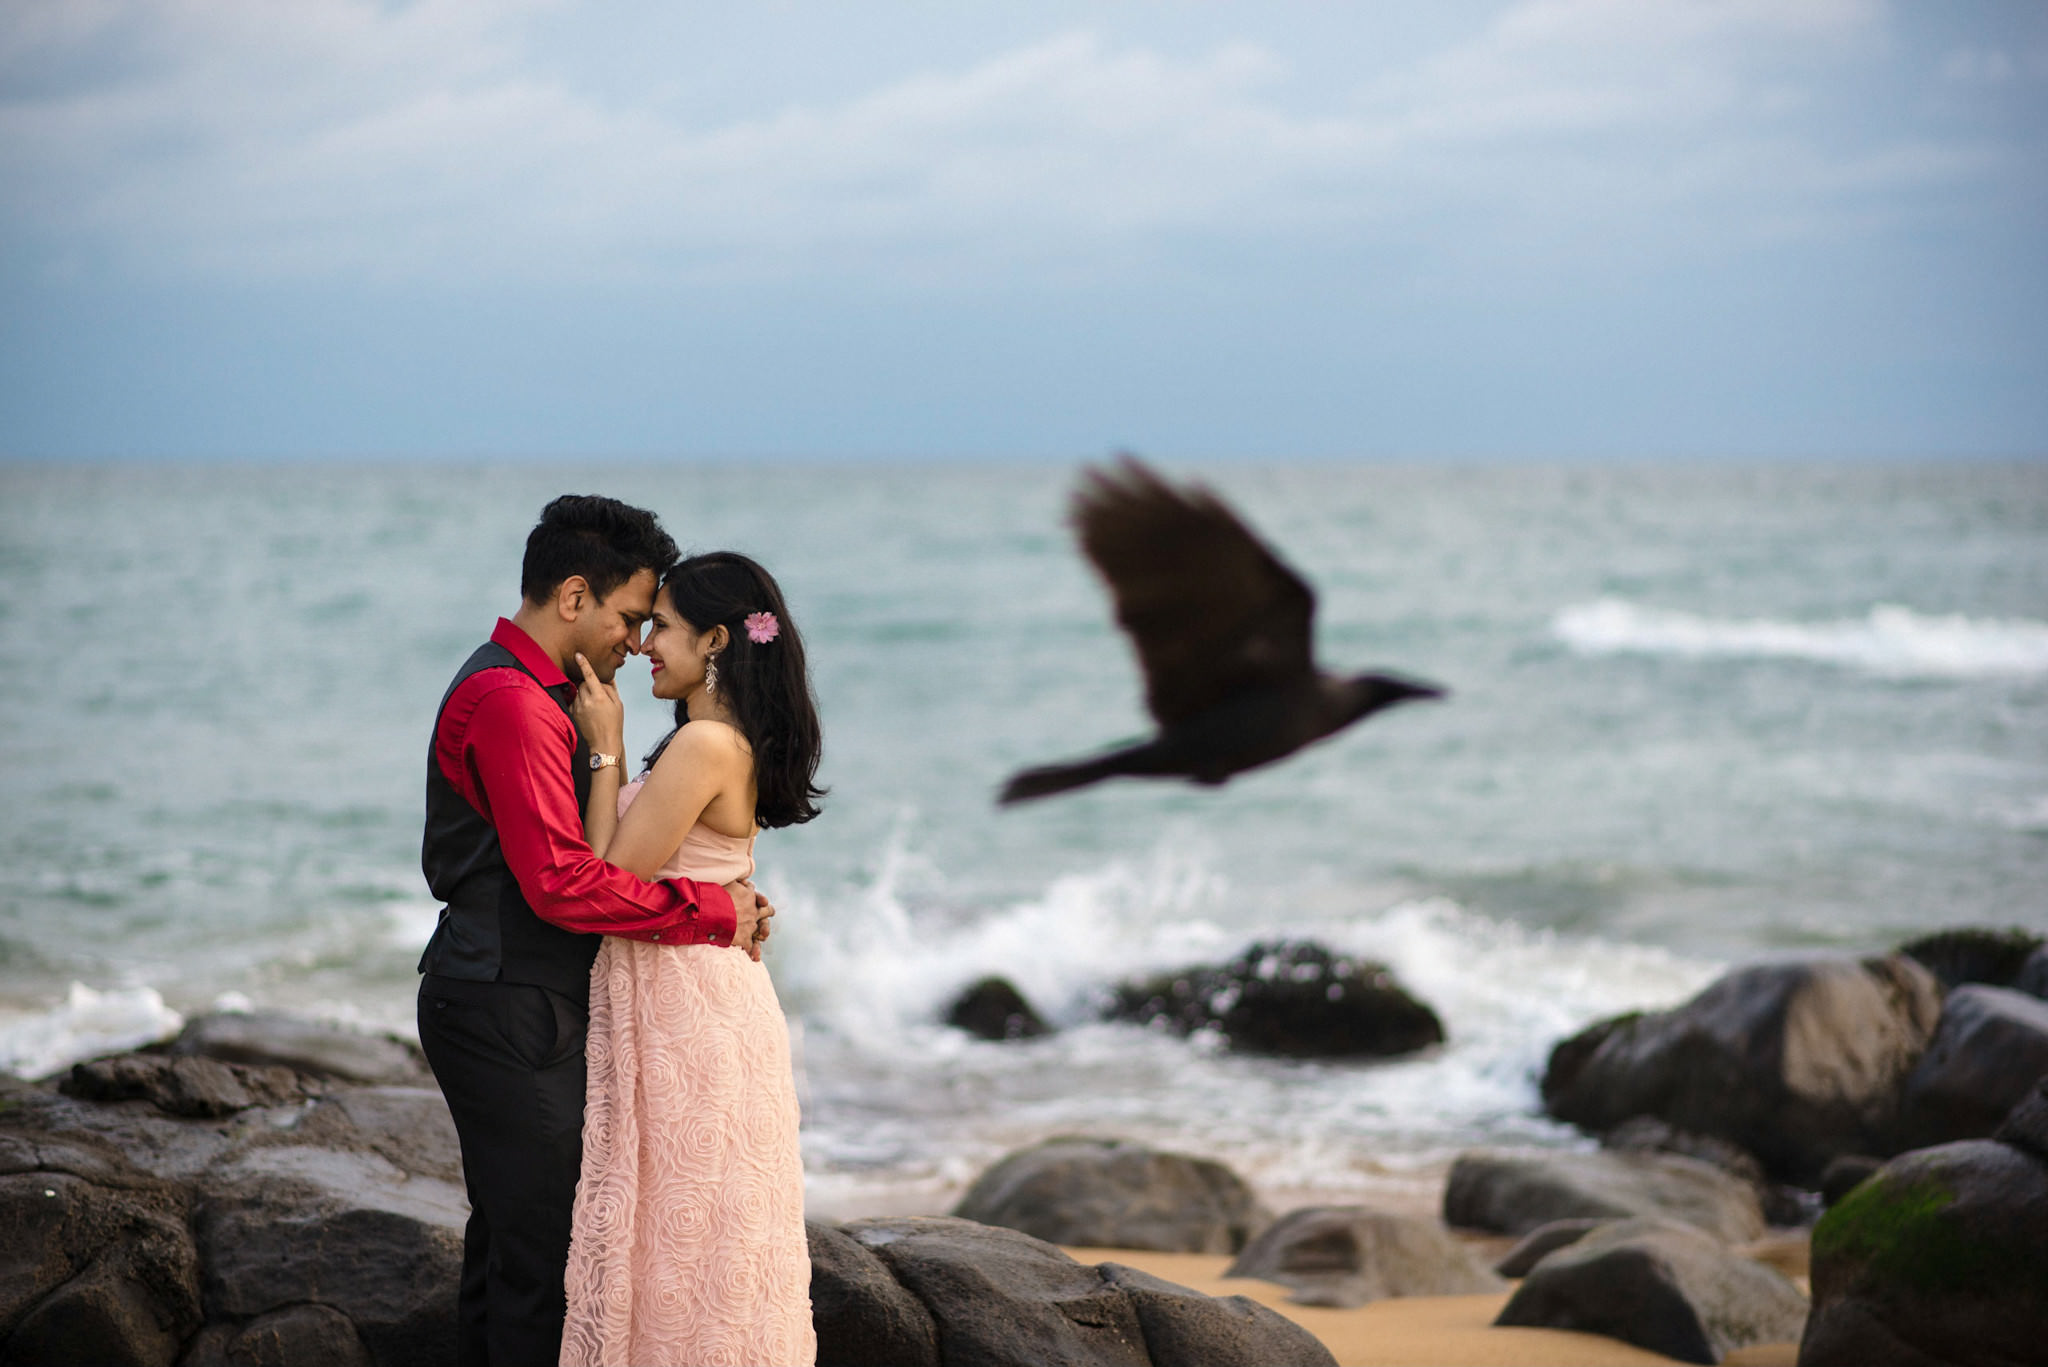 couple-outdoor-shoot-chennai_003.jpg